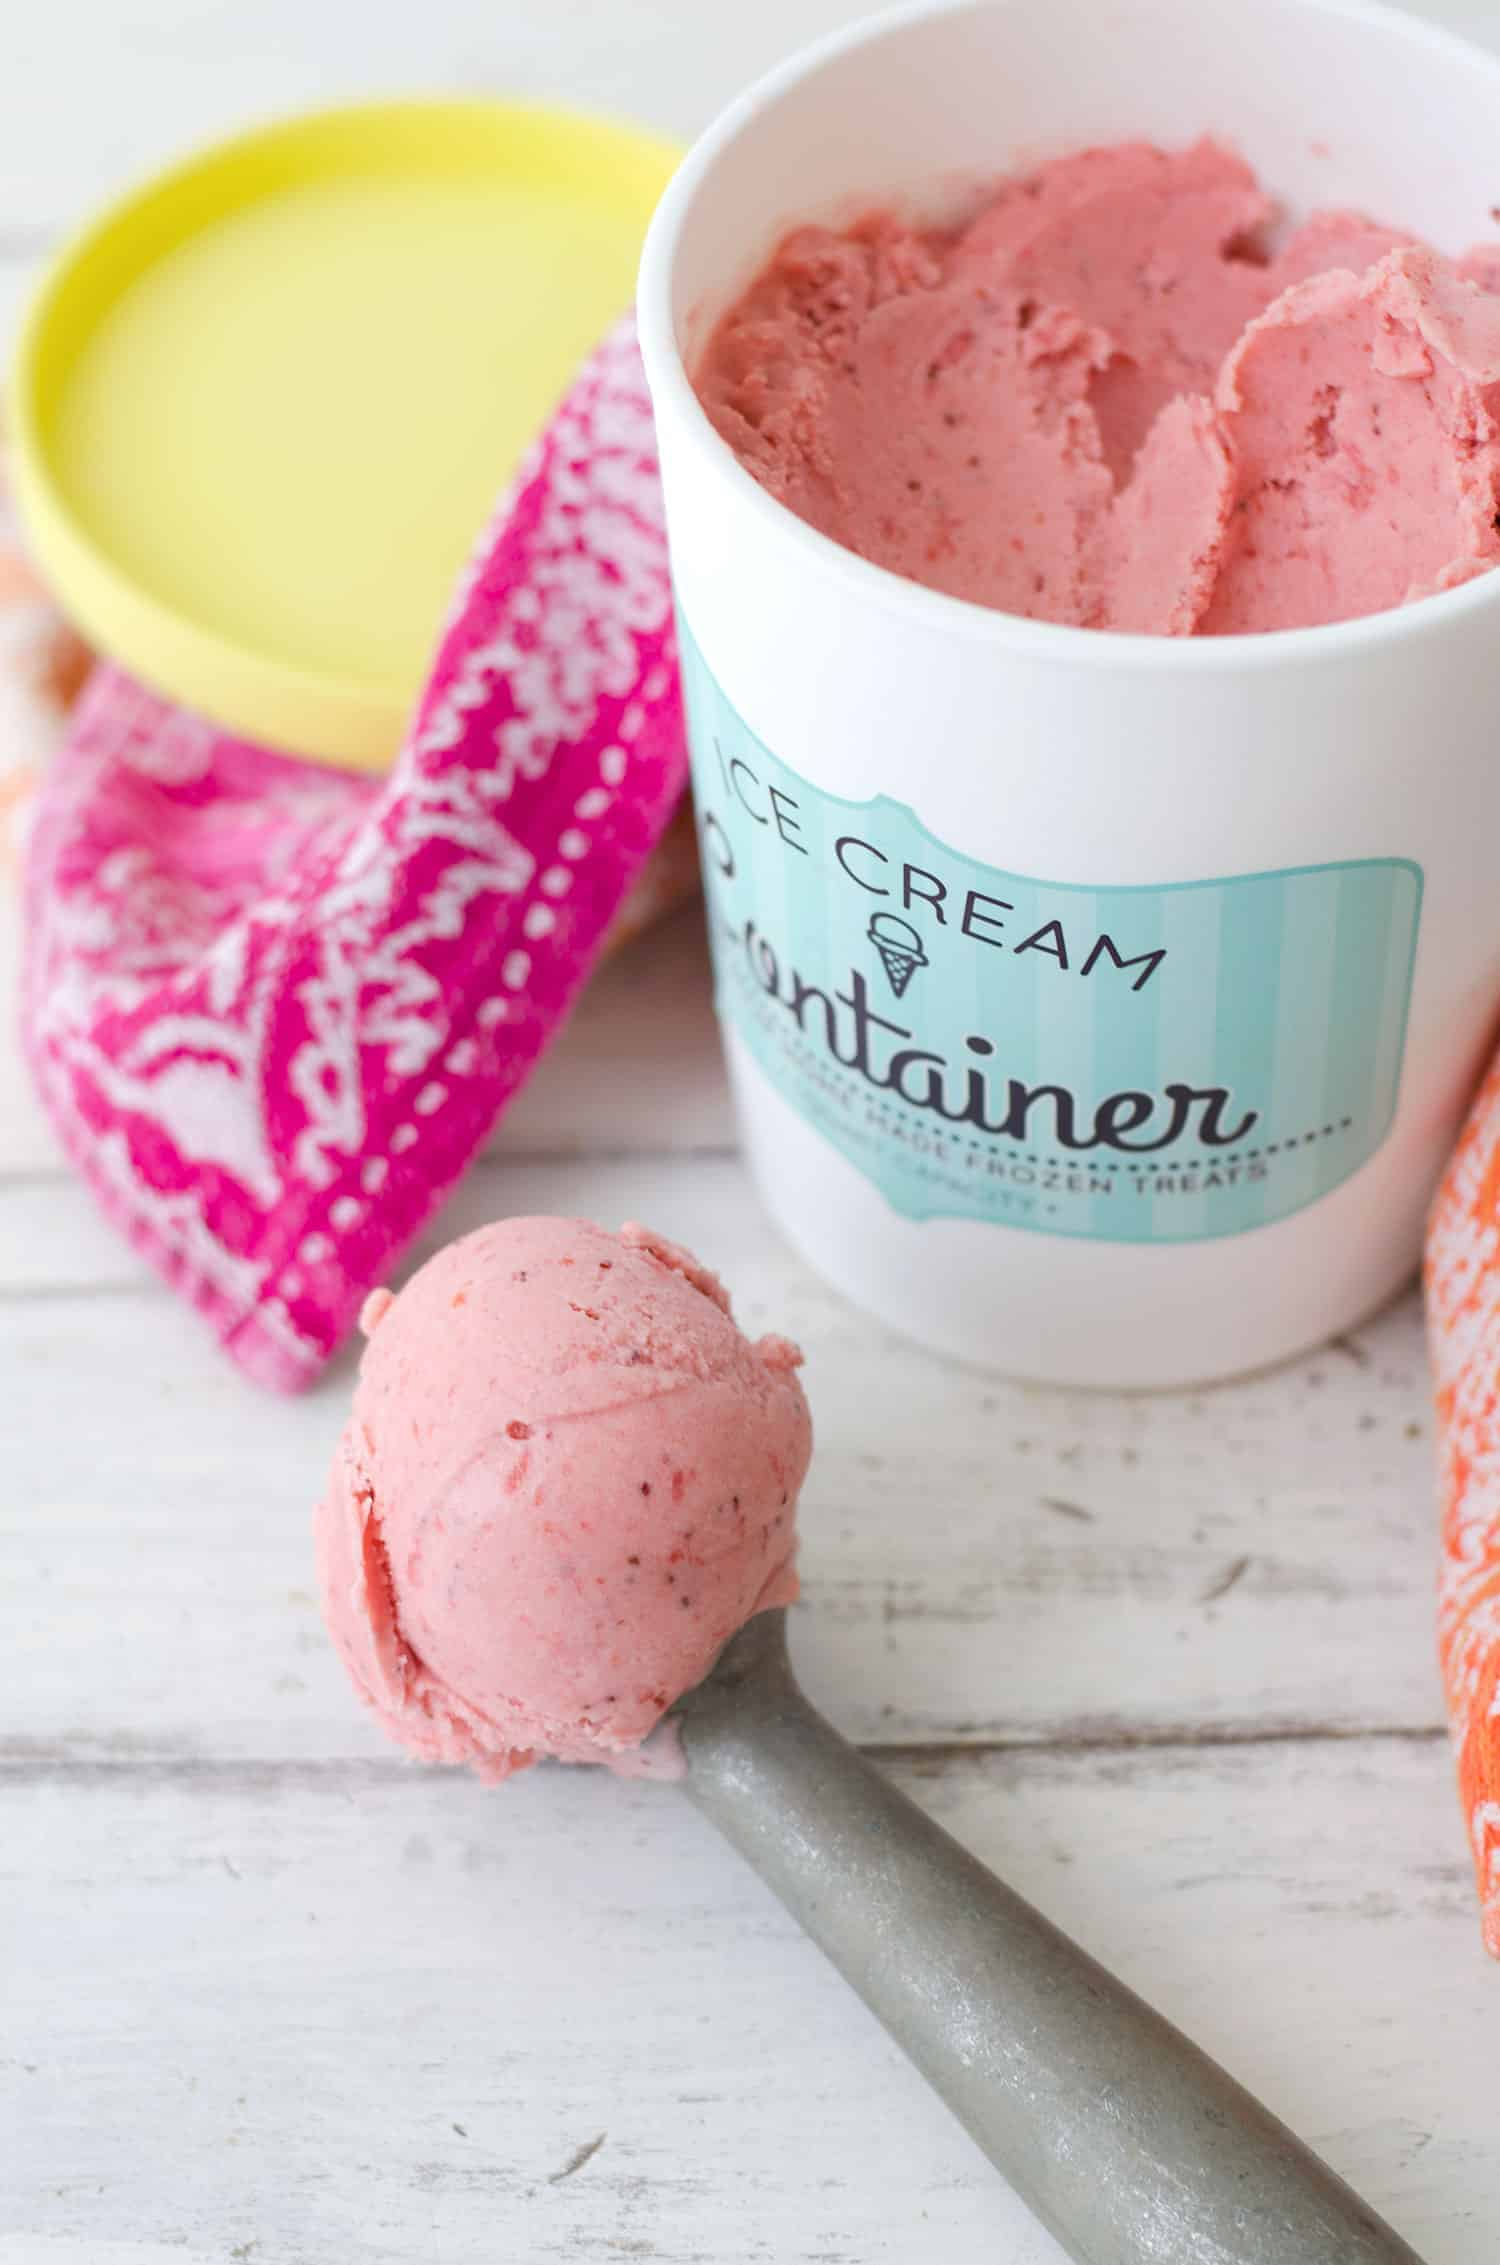 Roasted Strawberry Balsamic Ice cream! You are going to LOVE this vegan ice-cream. Roasted strawberries give this so much flavor, incredible that it's dairy-free! Only 5 ingredients! | www,delishknowledge.com